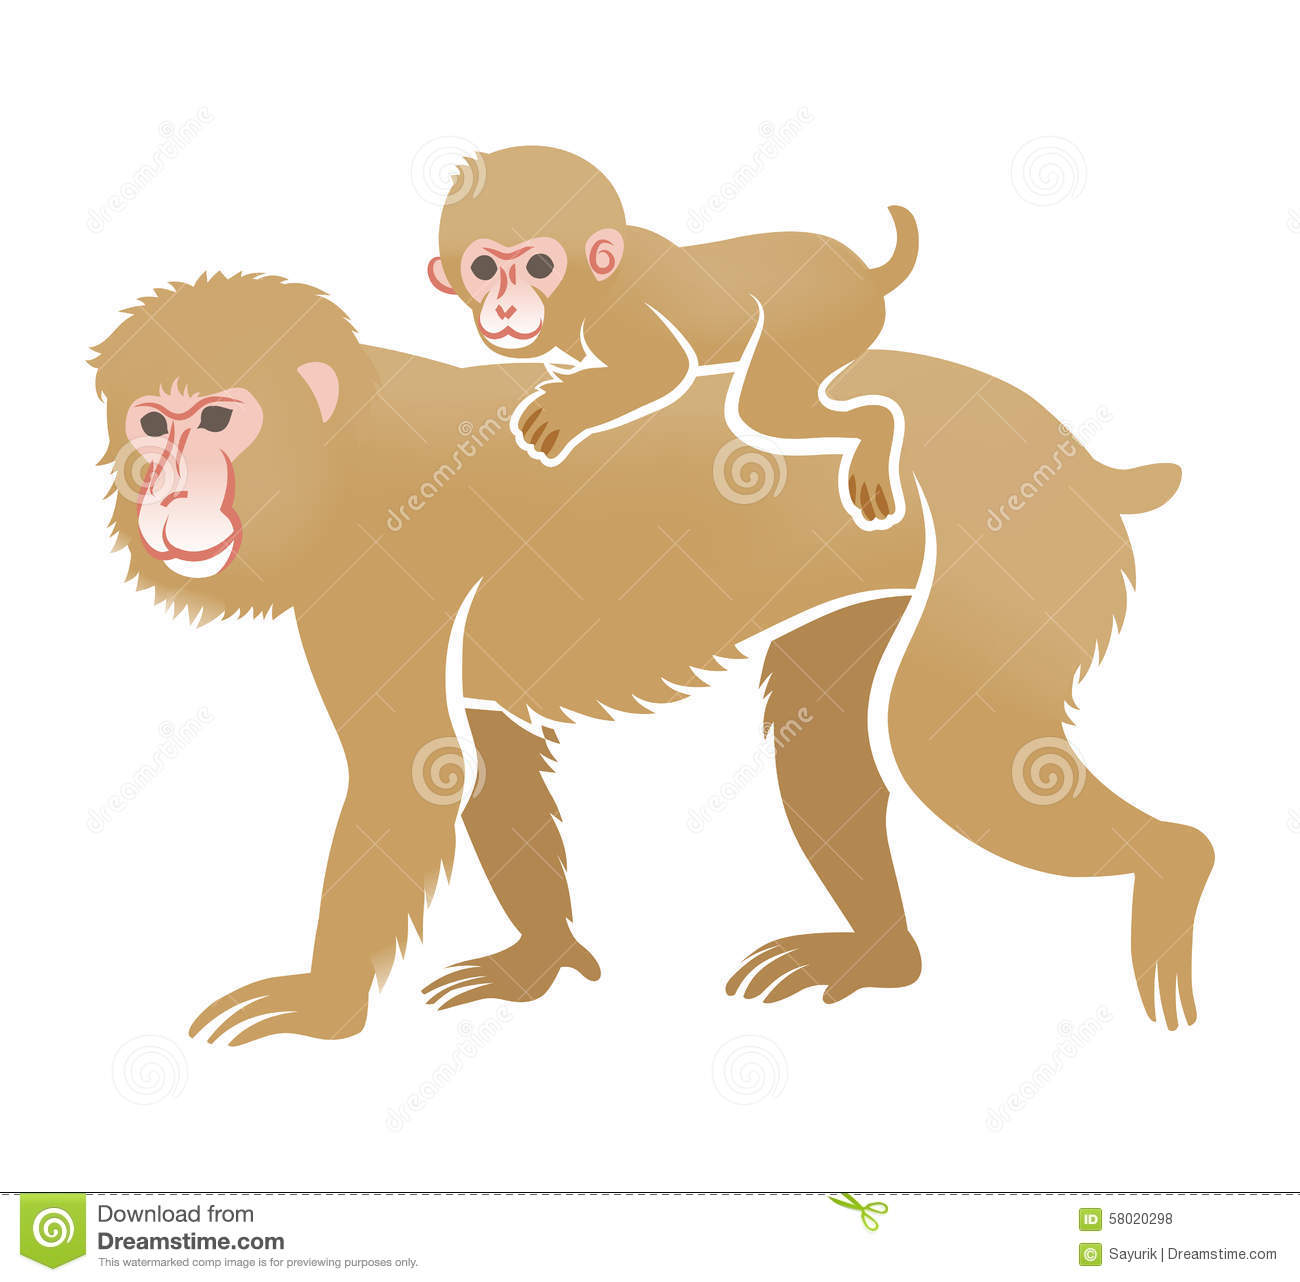 Year Of The Monkey Clip Art.